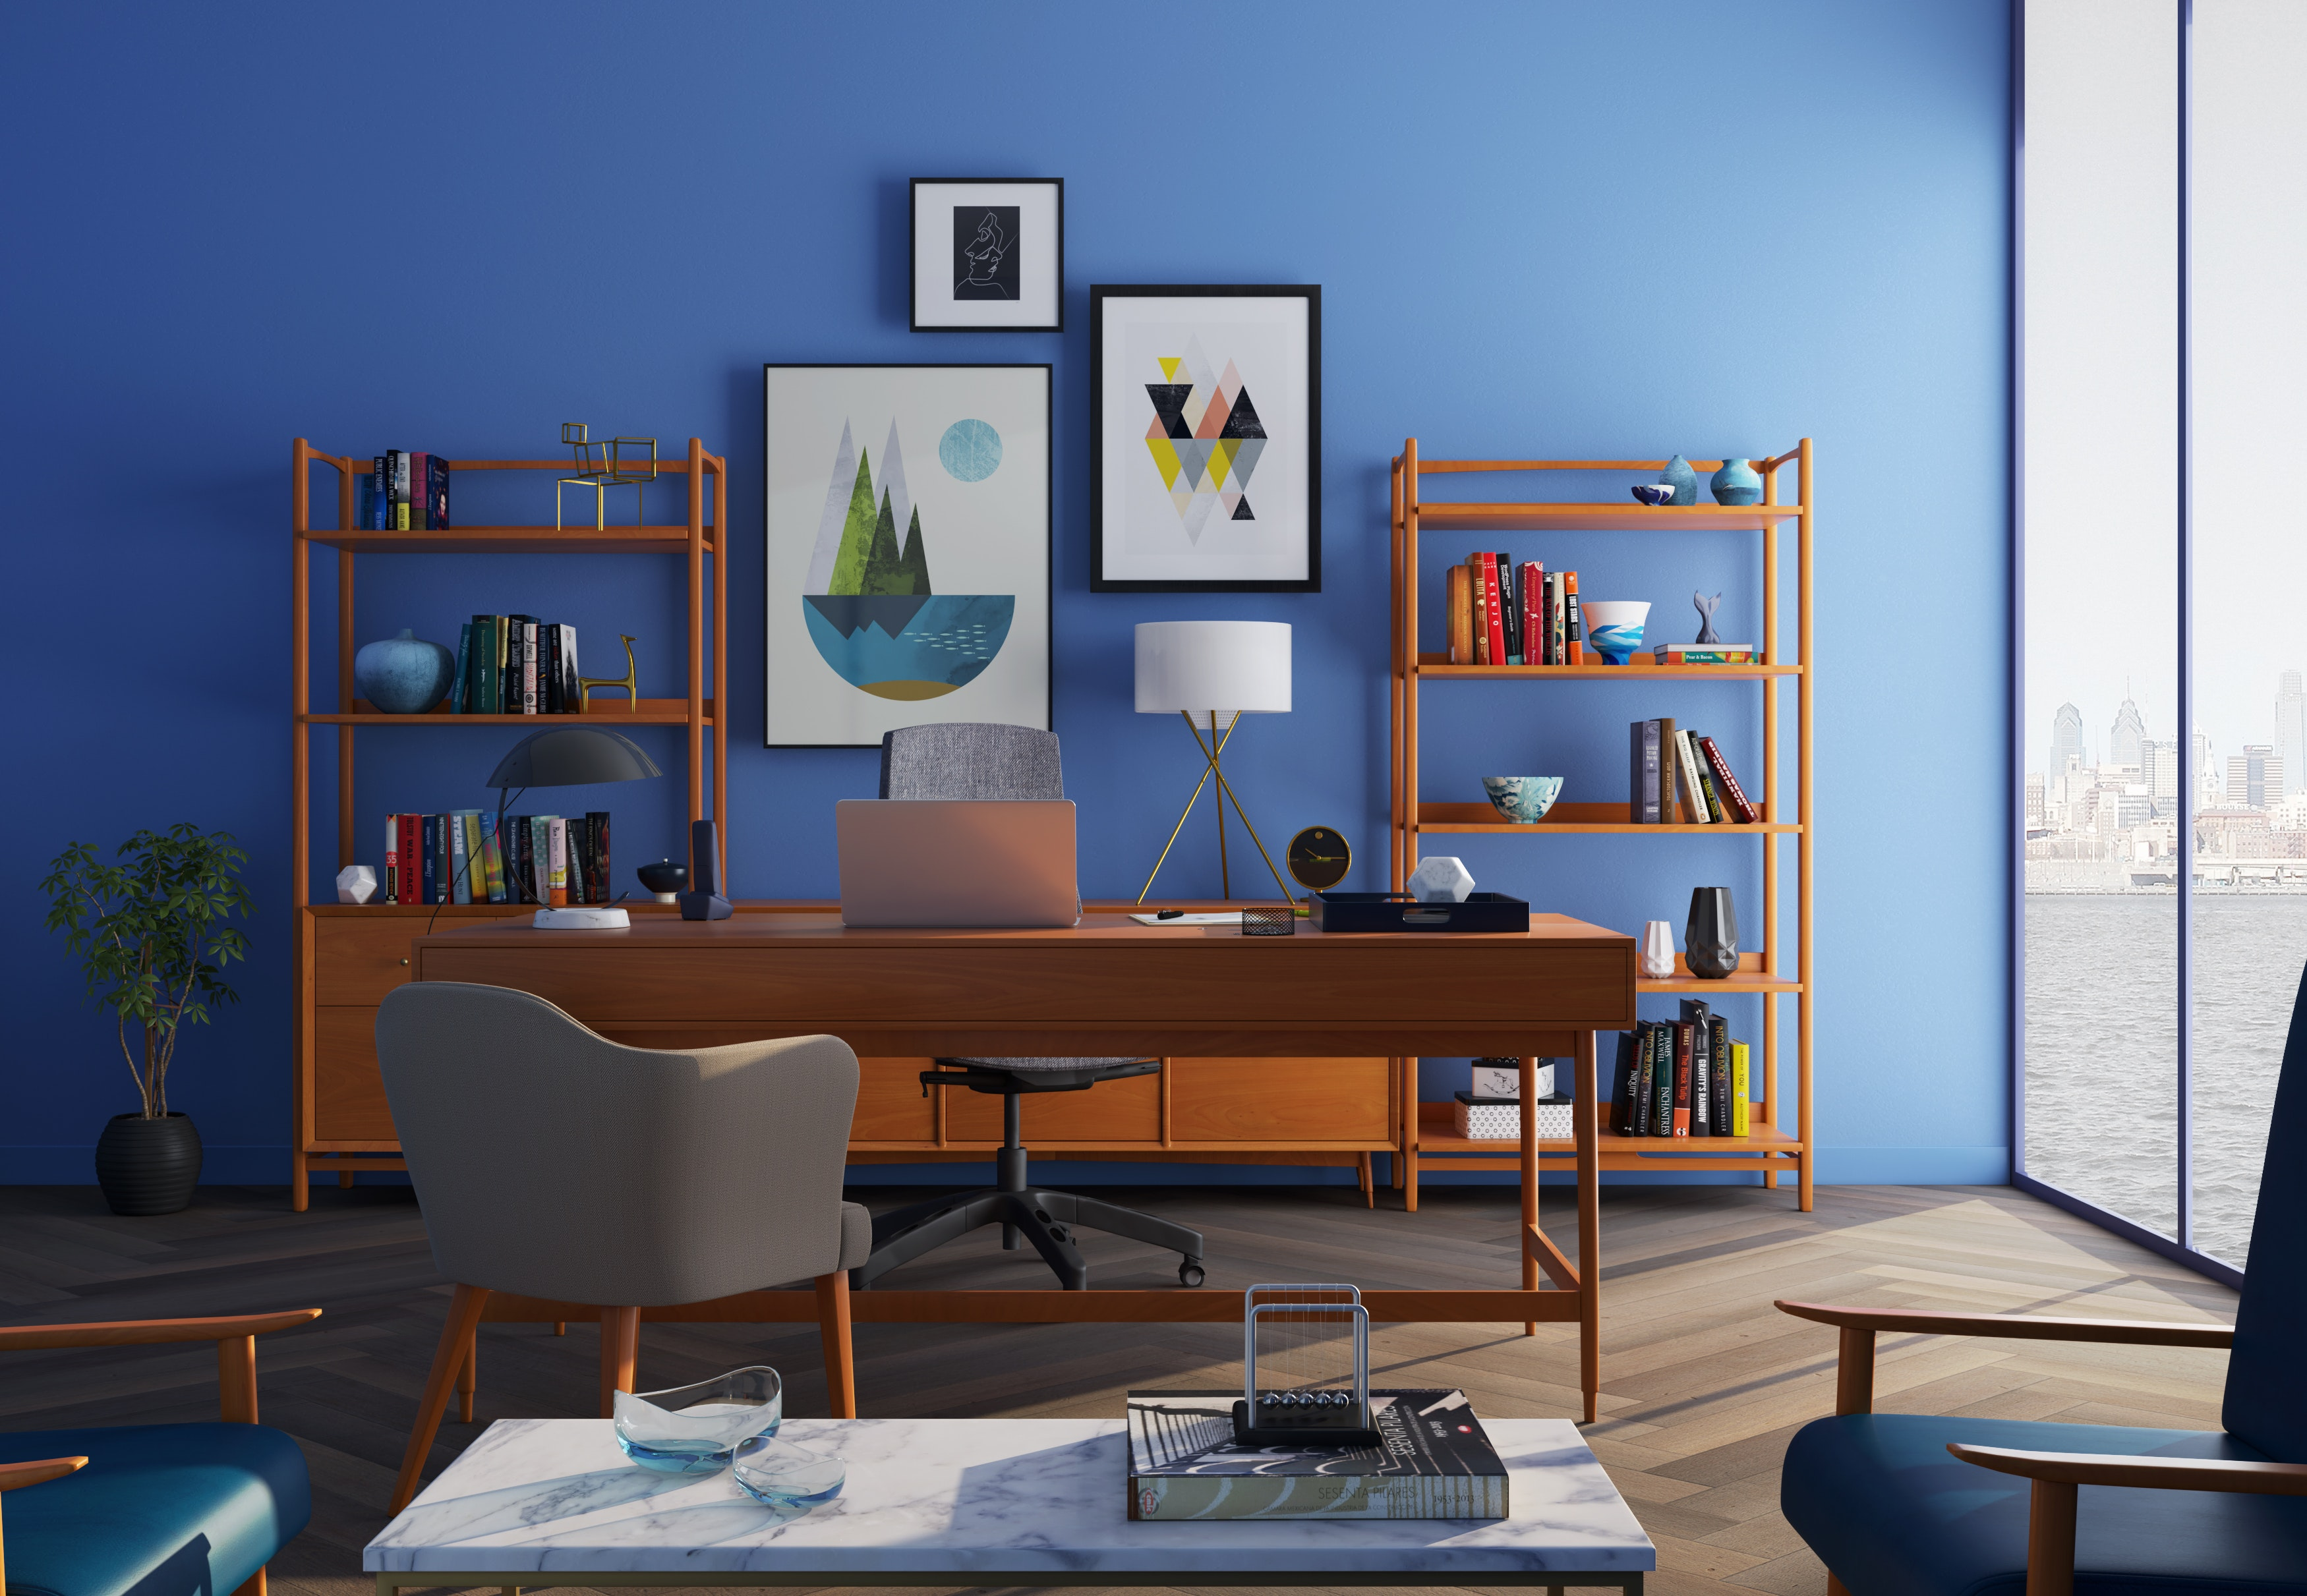 brown-wooden-desk-with-rolling-chair-and-shelves-near-window-667838